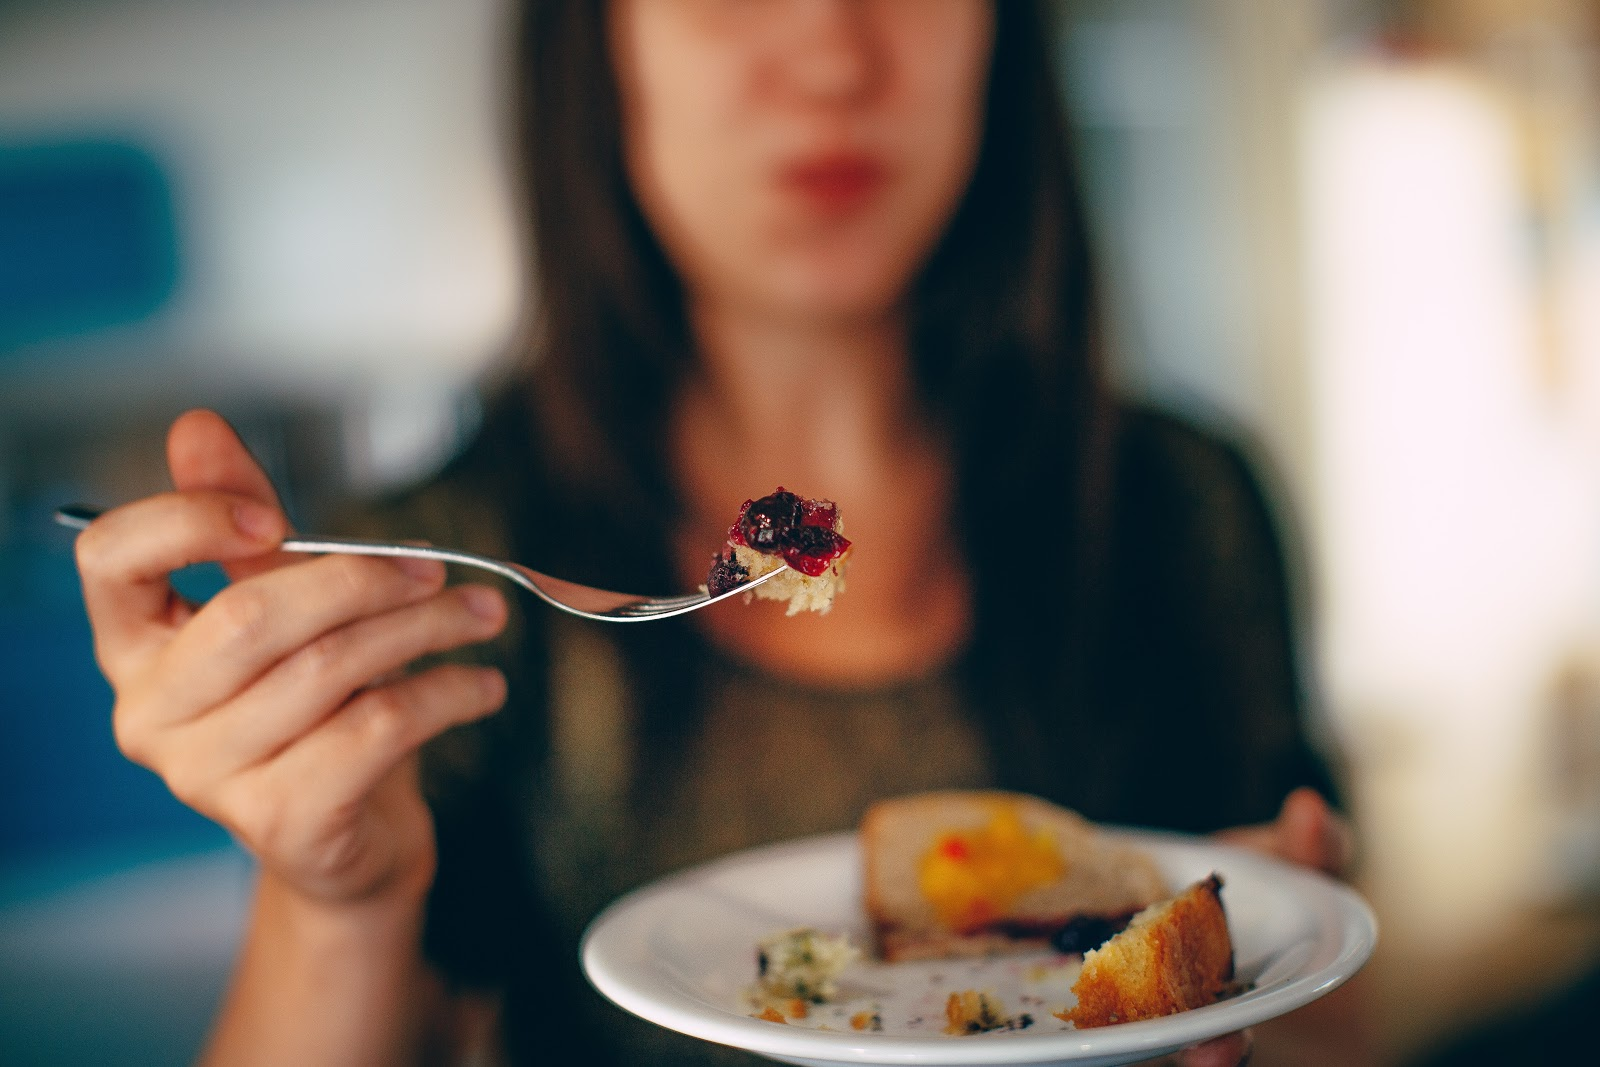 5 Small Changes You Can Make Towards Eating Sustainably